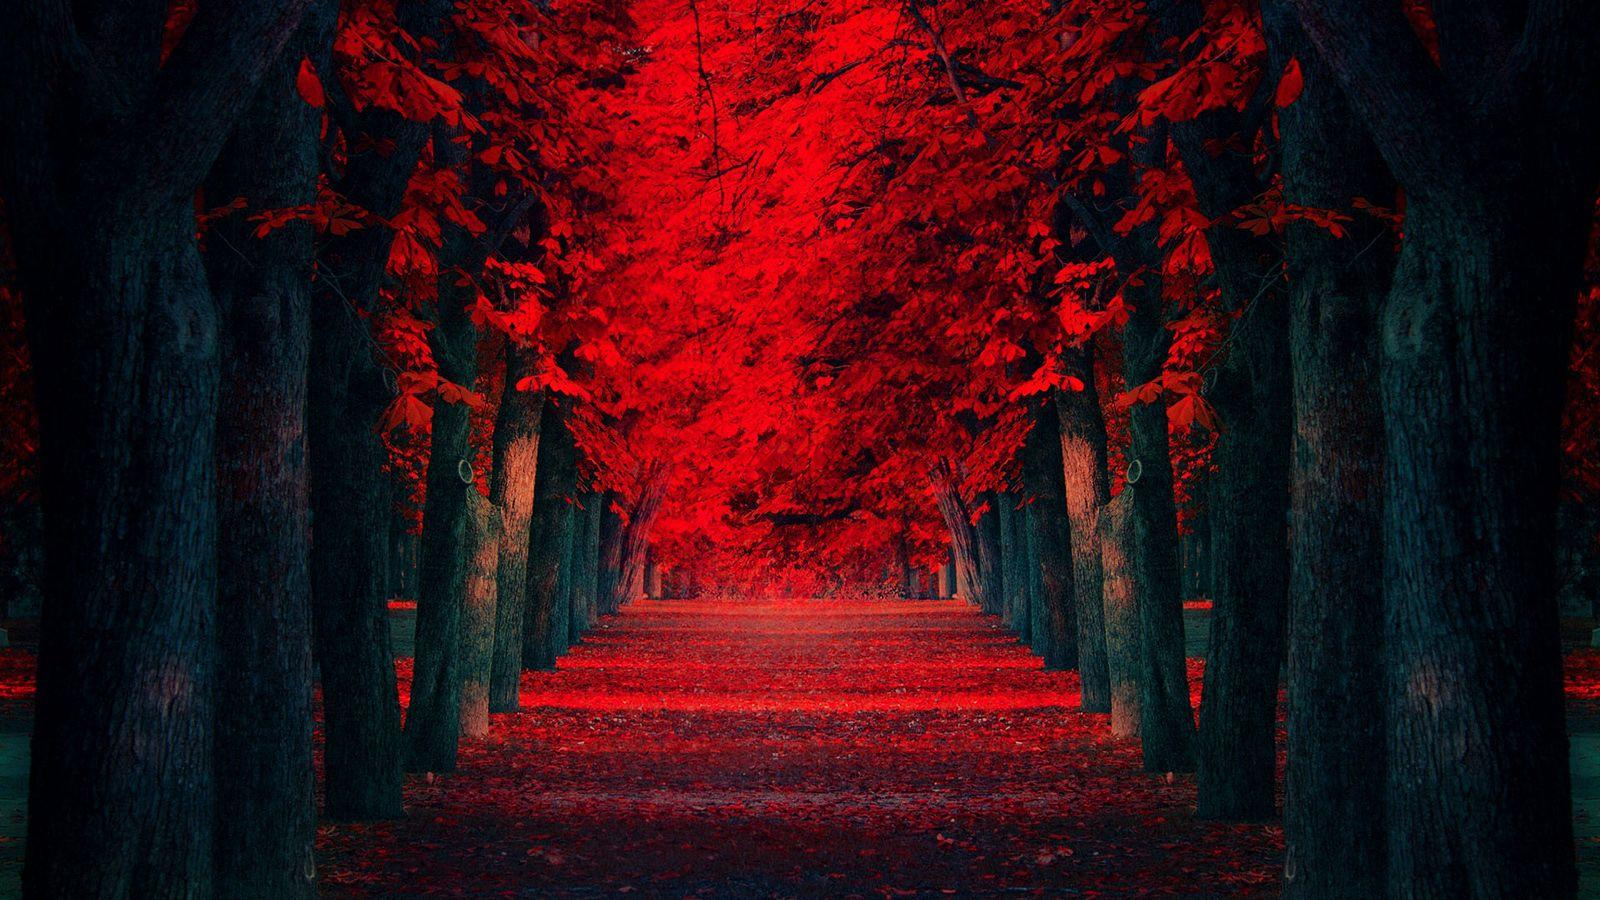 Wallpapers Hd Red Wallpaper Cave